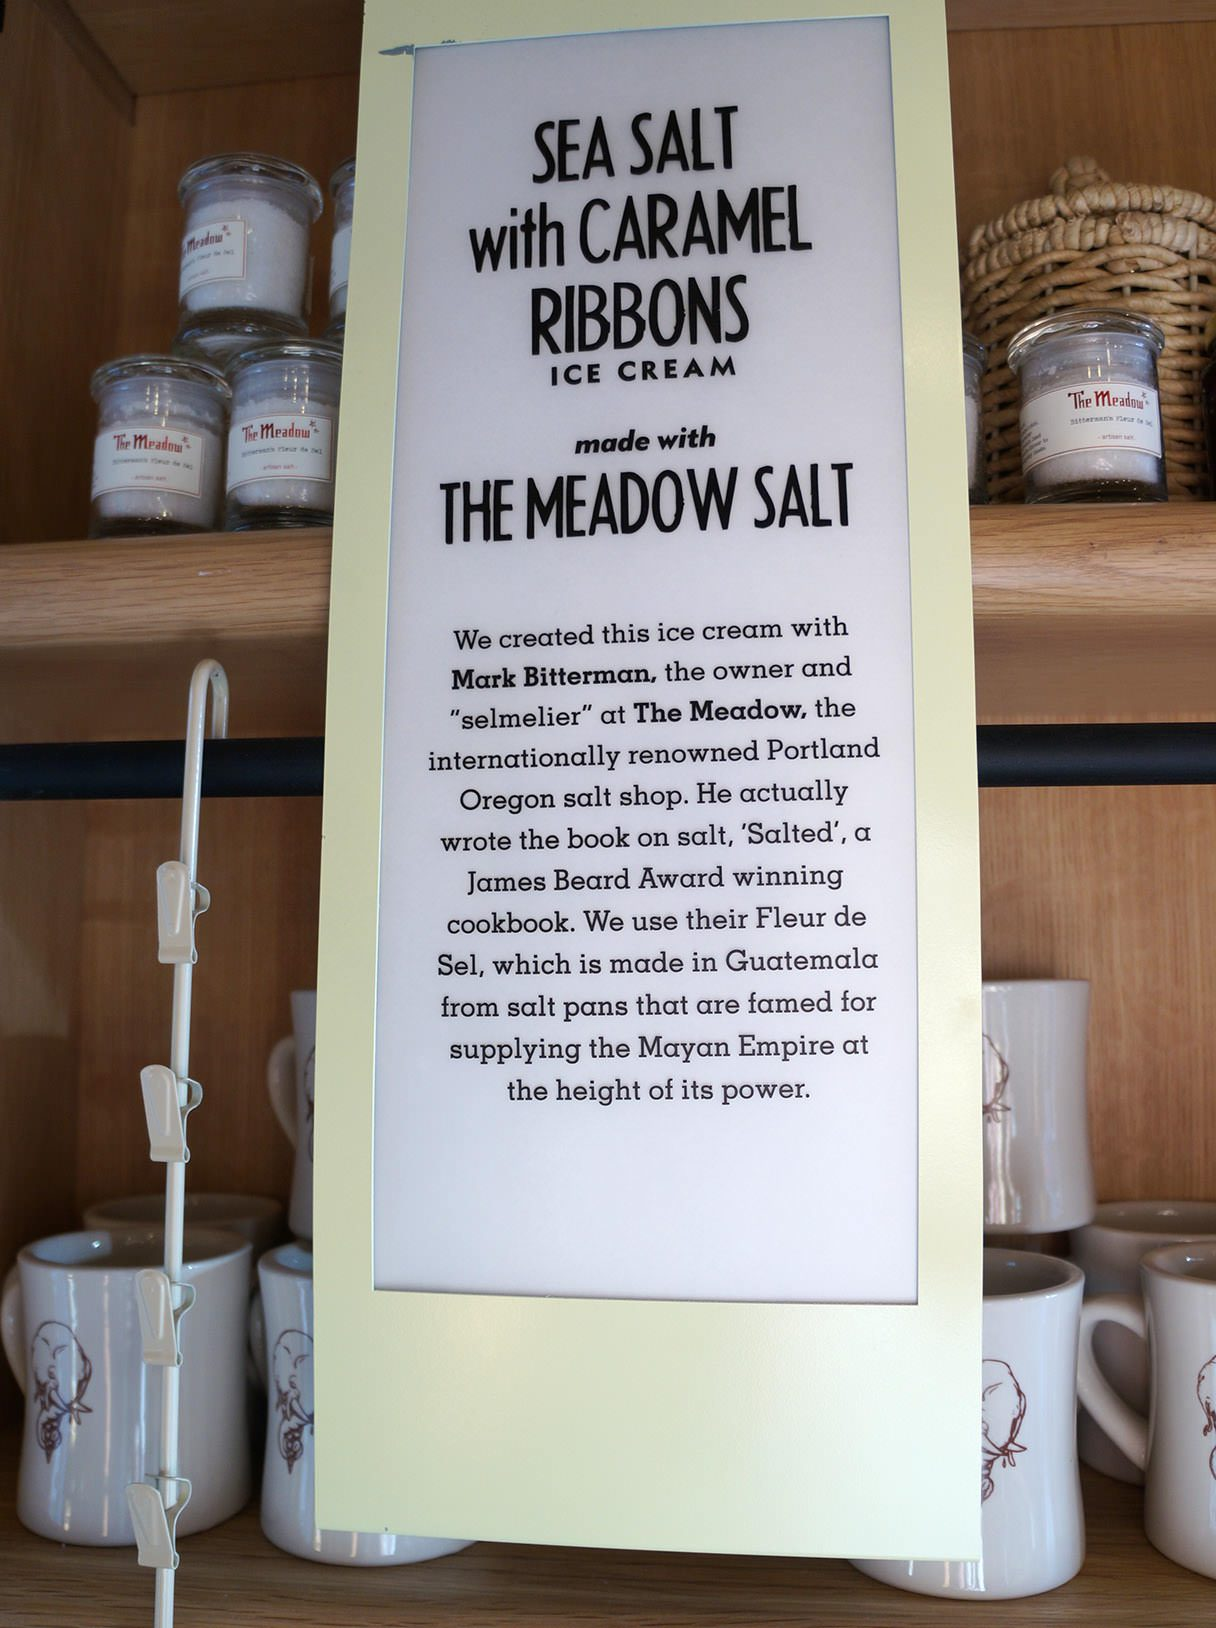 The Meadow Salt